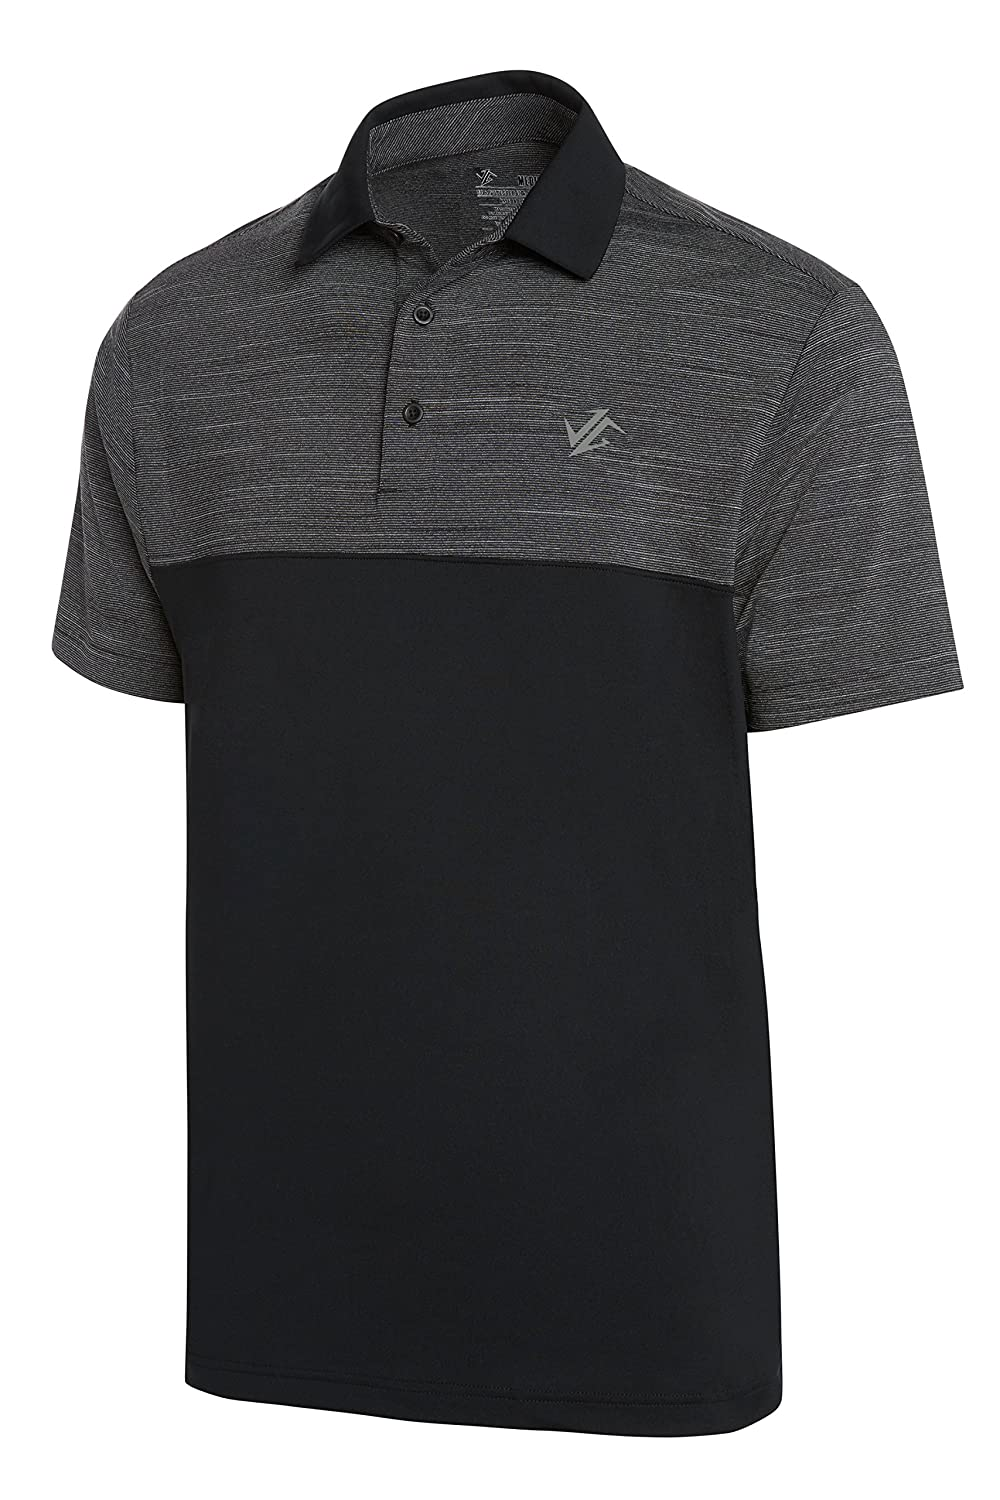 8b95e9c02 THE PERFECT ATHLETIC PERFORMANCE FIT POLO for the golf course or everyday  casual wear – This men s golf shirt is sure to be one of your favorites.